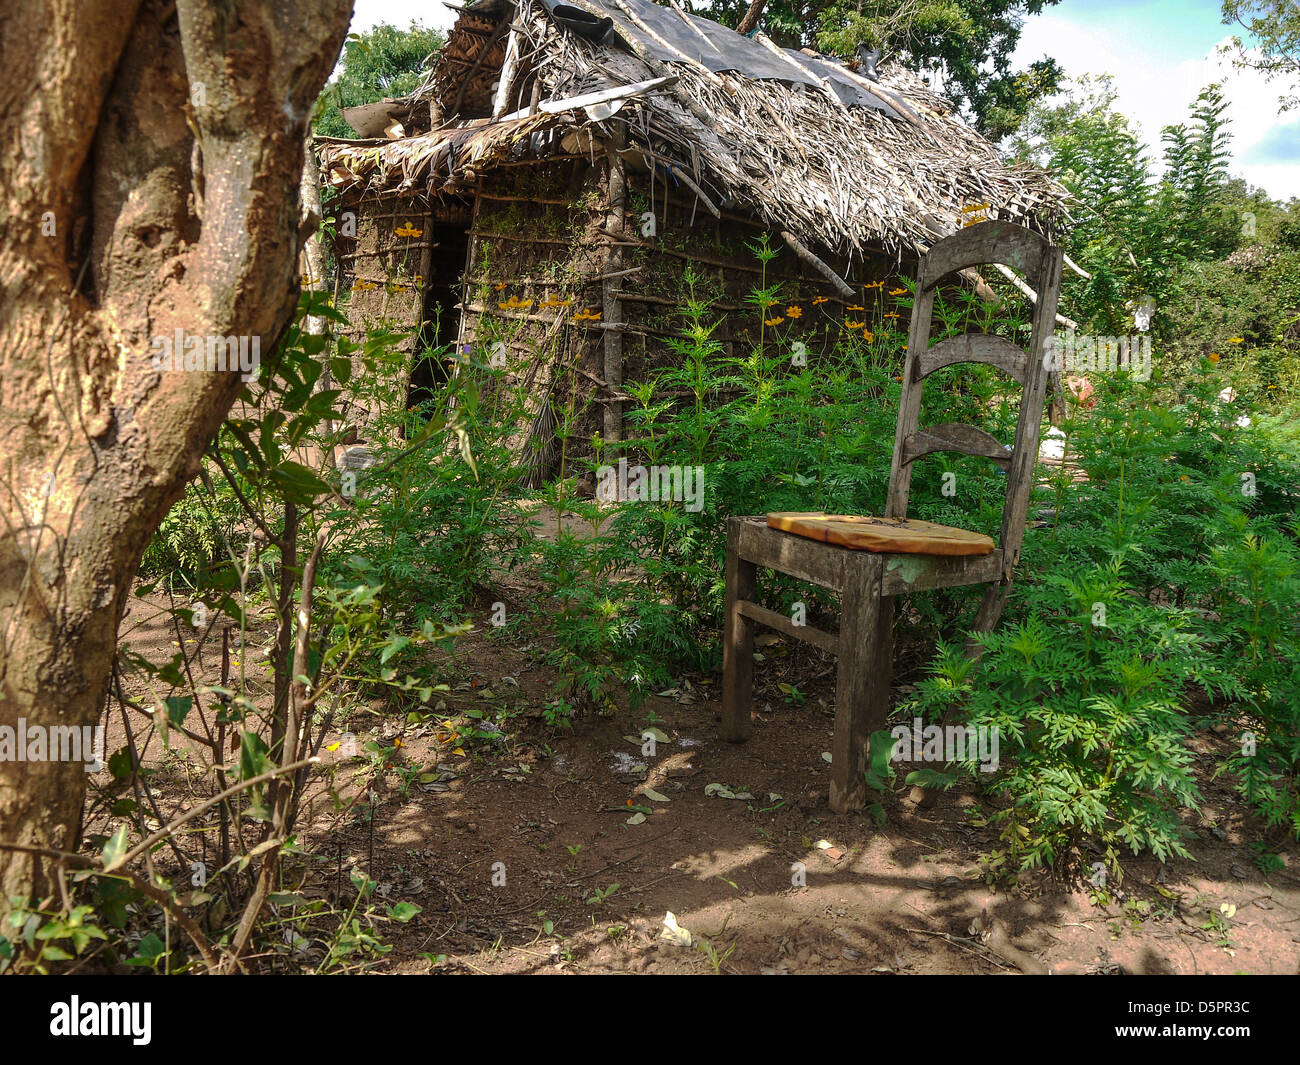 Poor family's straw hut in a Sri Lankan village near Sigiriya rock - Stock Image